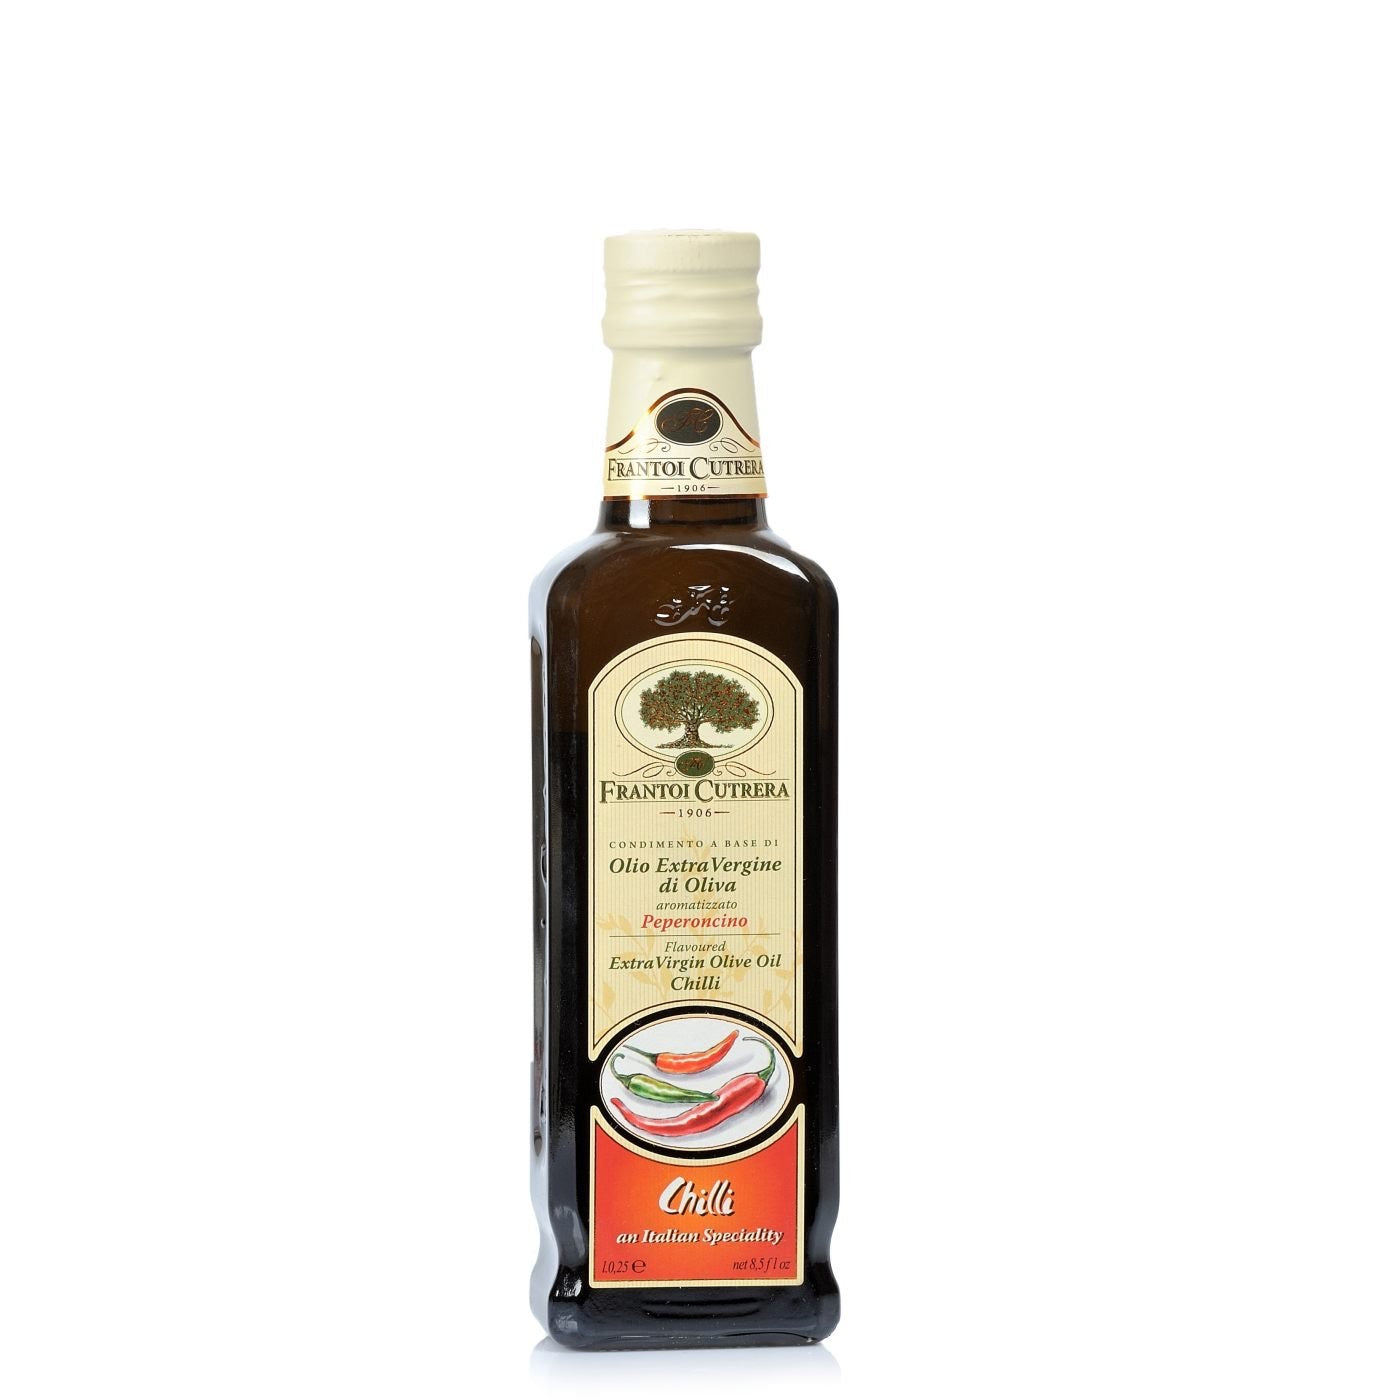 Frantoi Cutrera Extra Virgin olive oil flavoured with chili peppers. 250ml